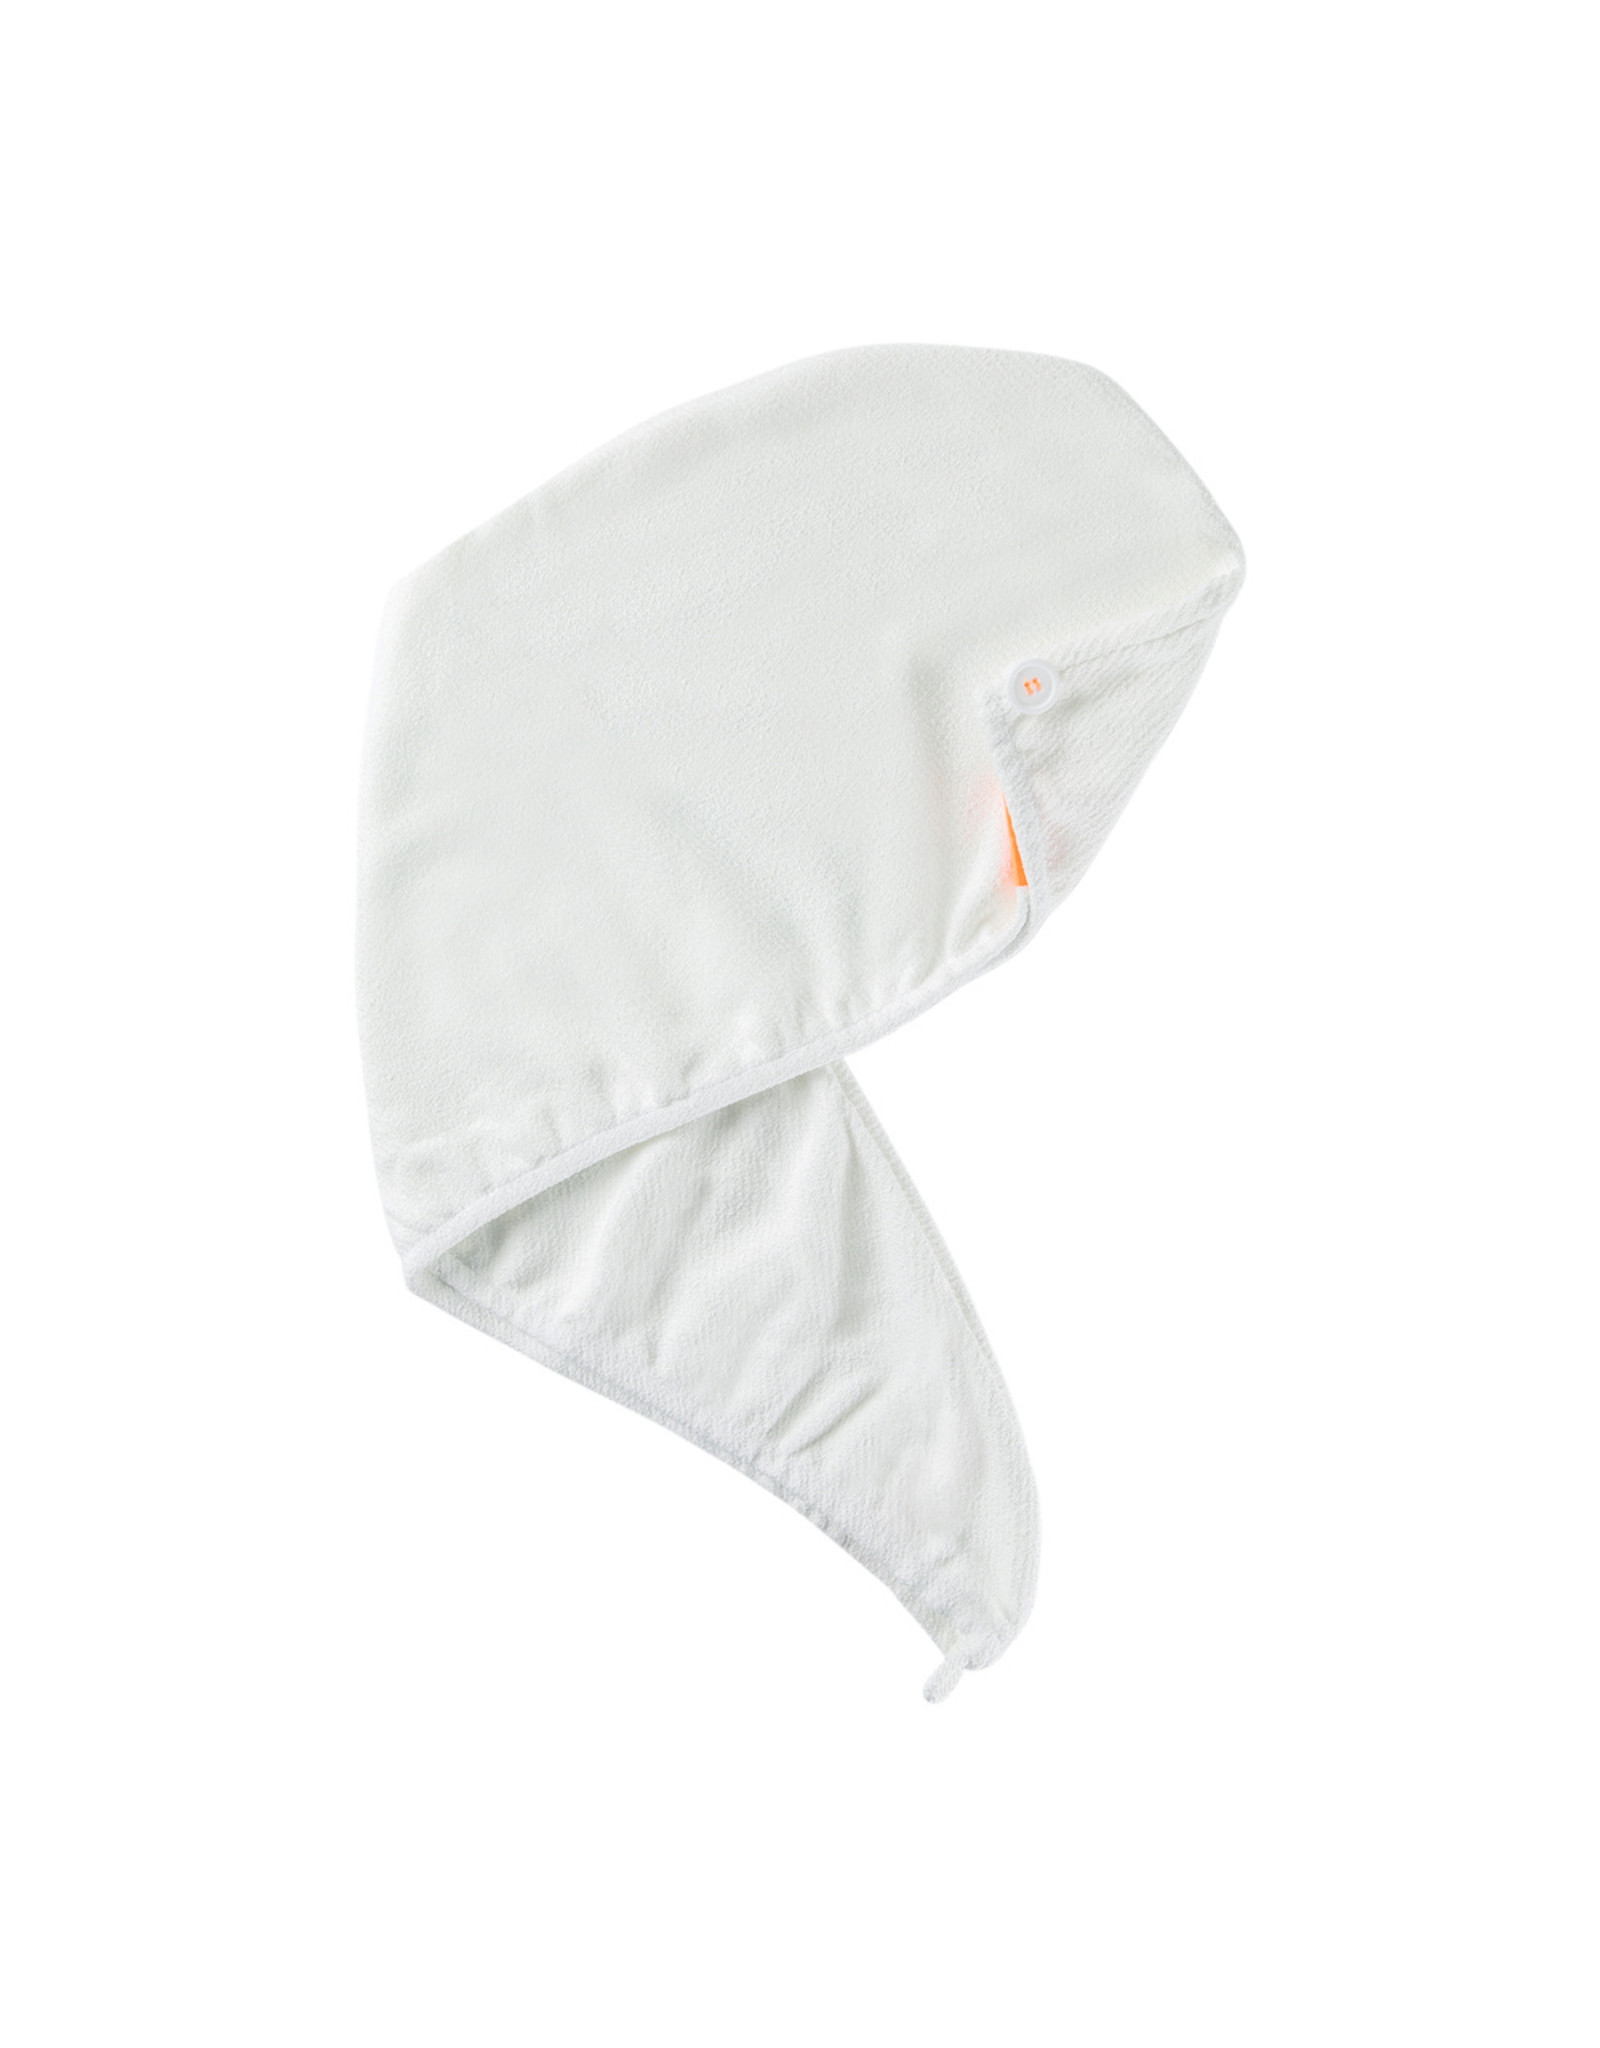 Aquis Lisse Luxe Hair Turban (Color: White)